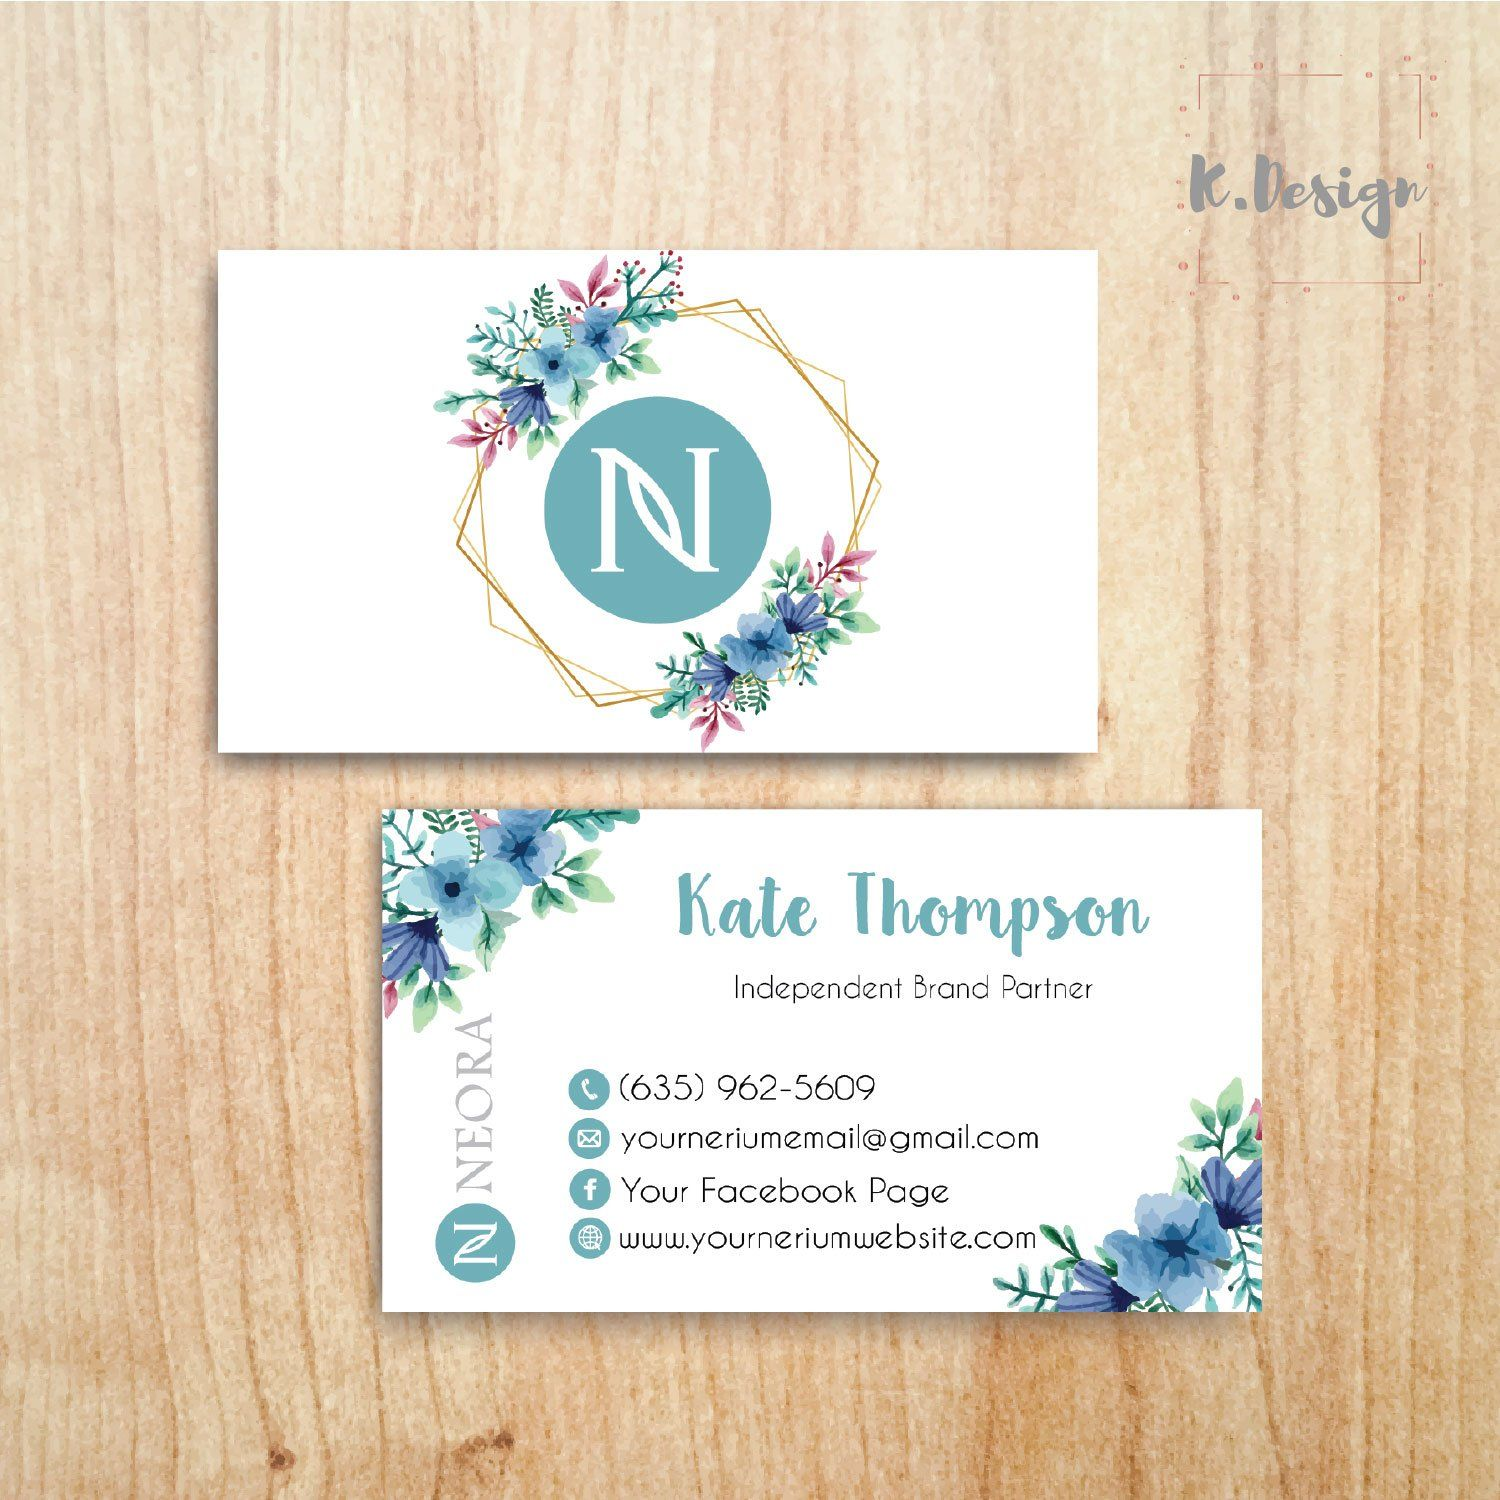 Neora Business Cards Personalized Neora Template Ne06 Photo Business Cards Custom Business Cards Personal Cards